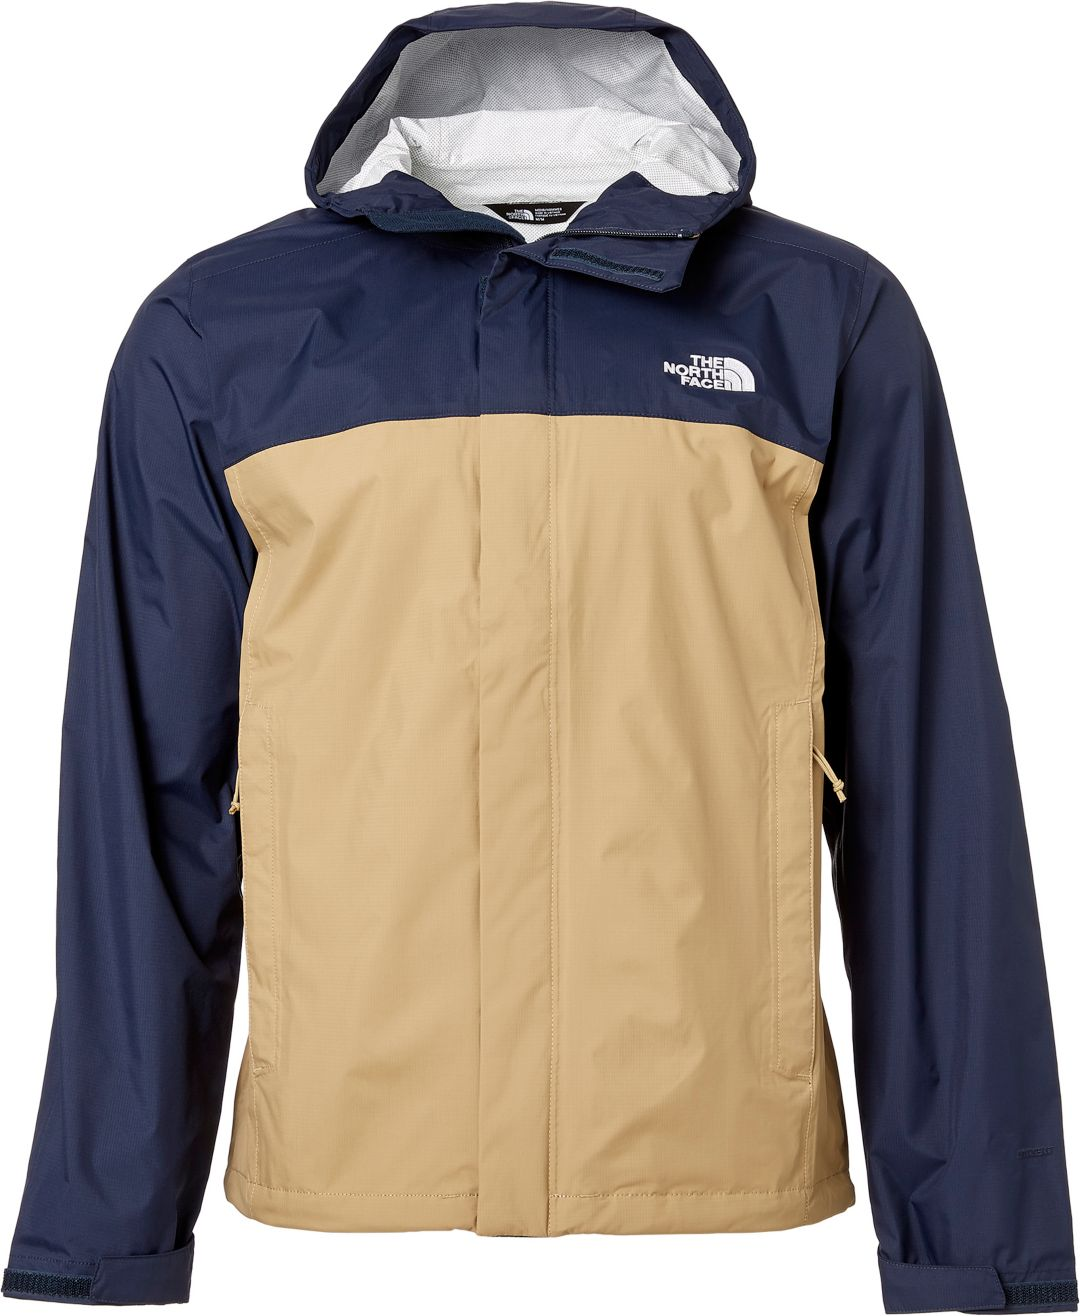 ac0fa78d0 The North Face Men's Venture 2 Jacket